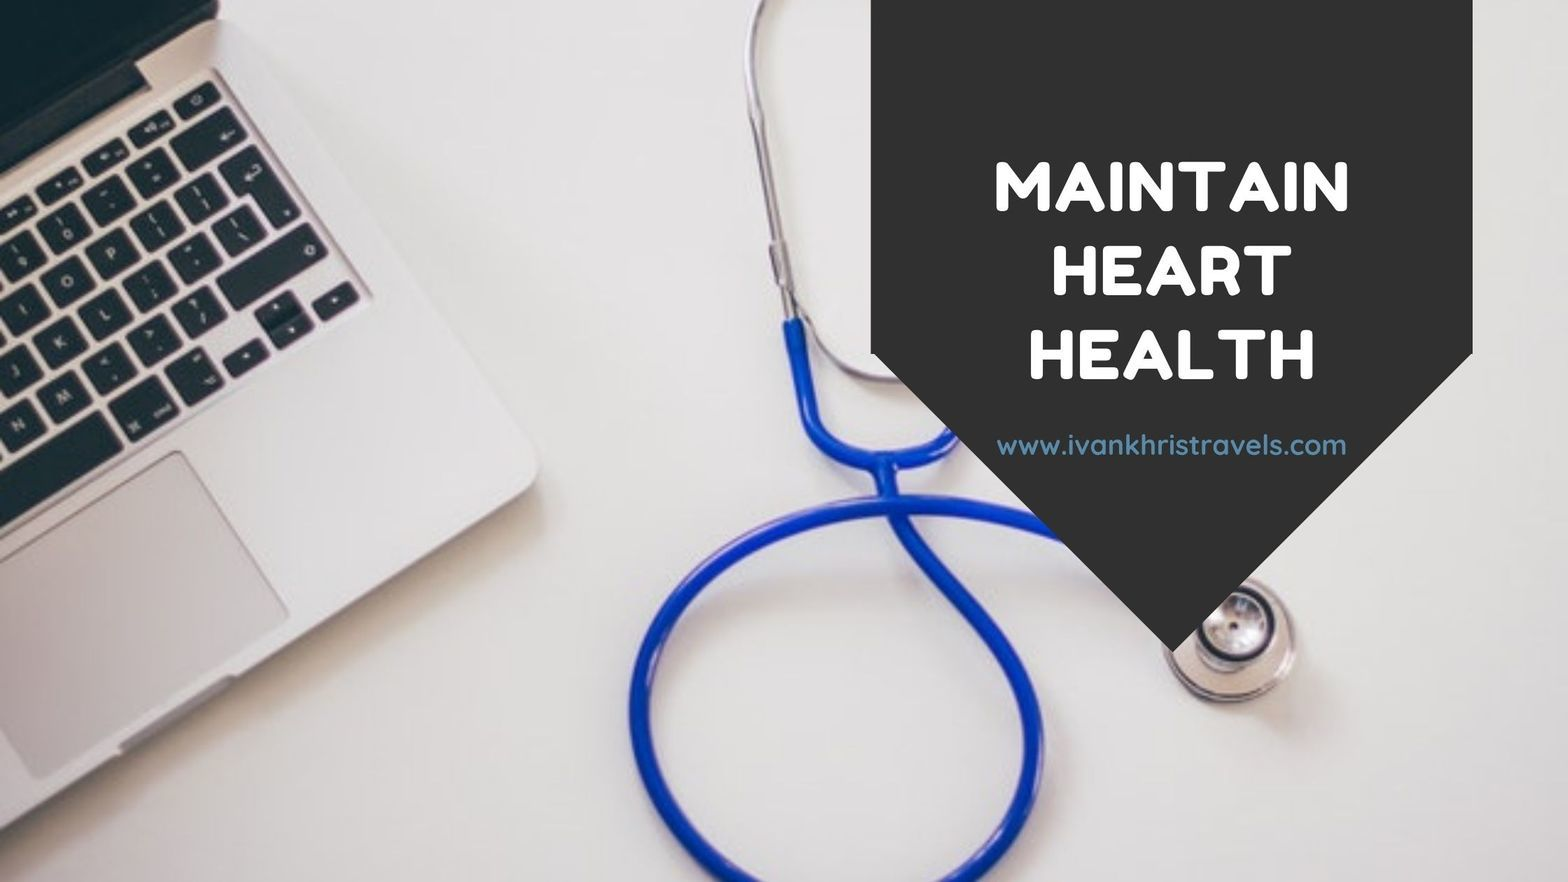 5 Ways To Maintain Your Family's Heart Health During The Pandemic